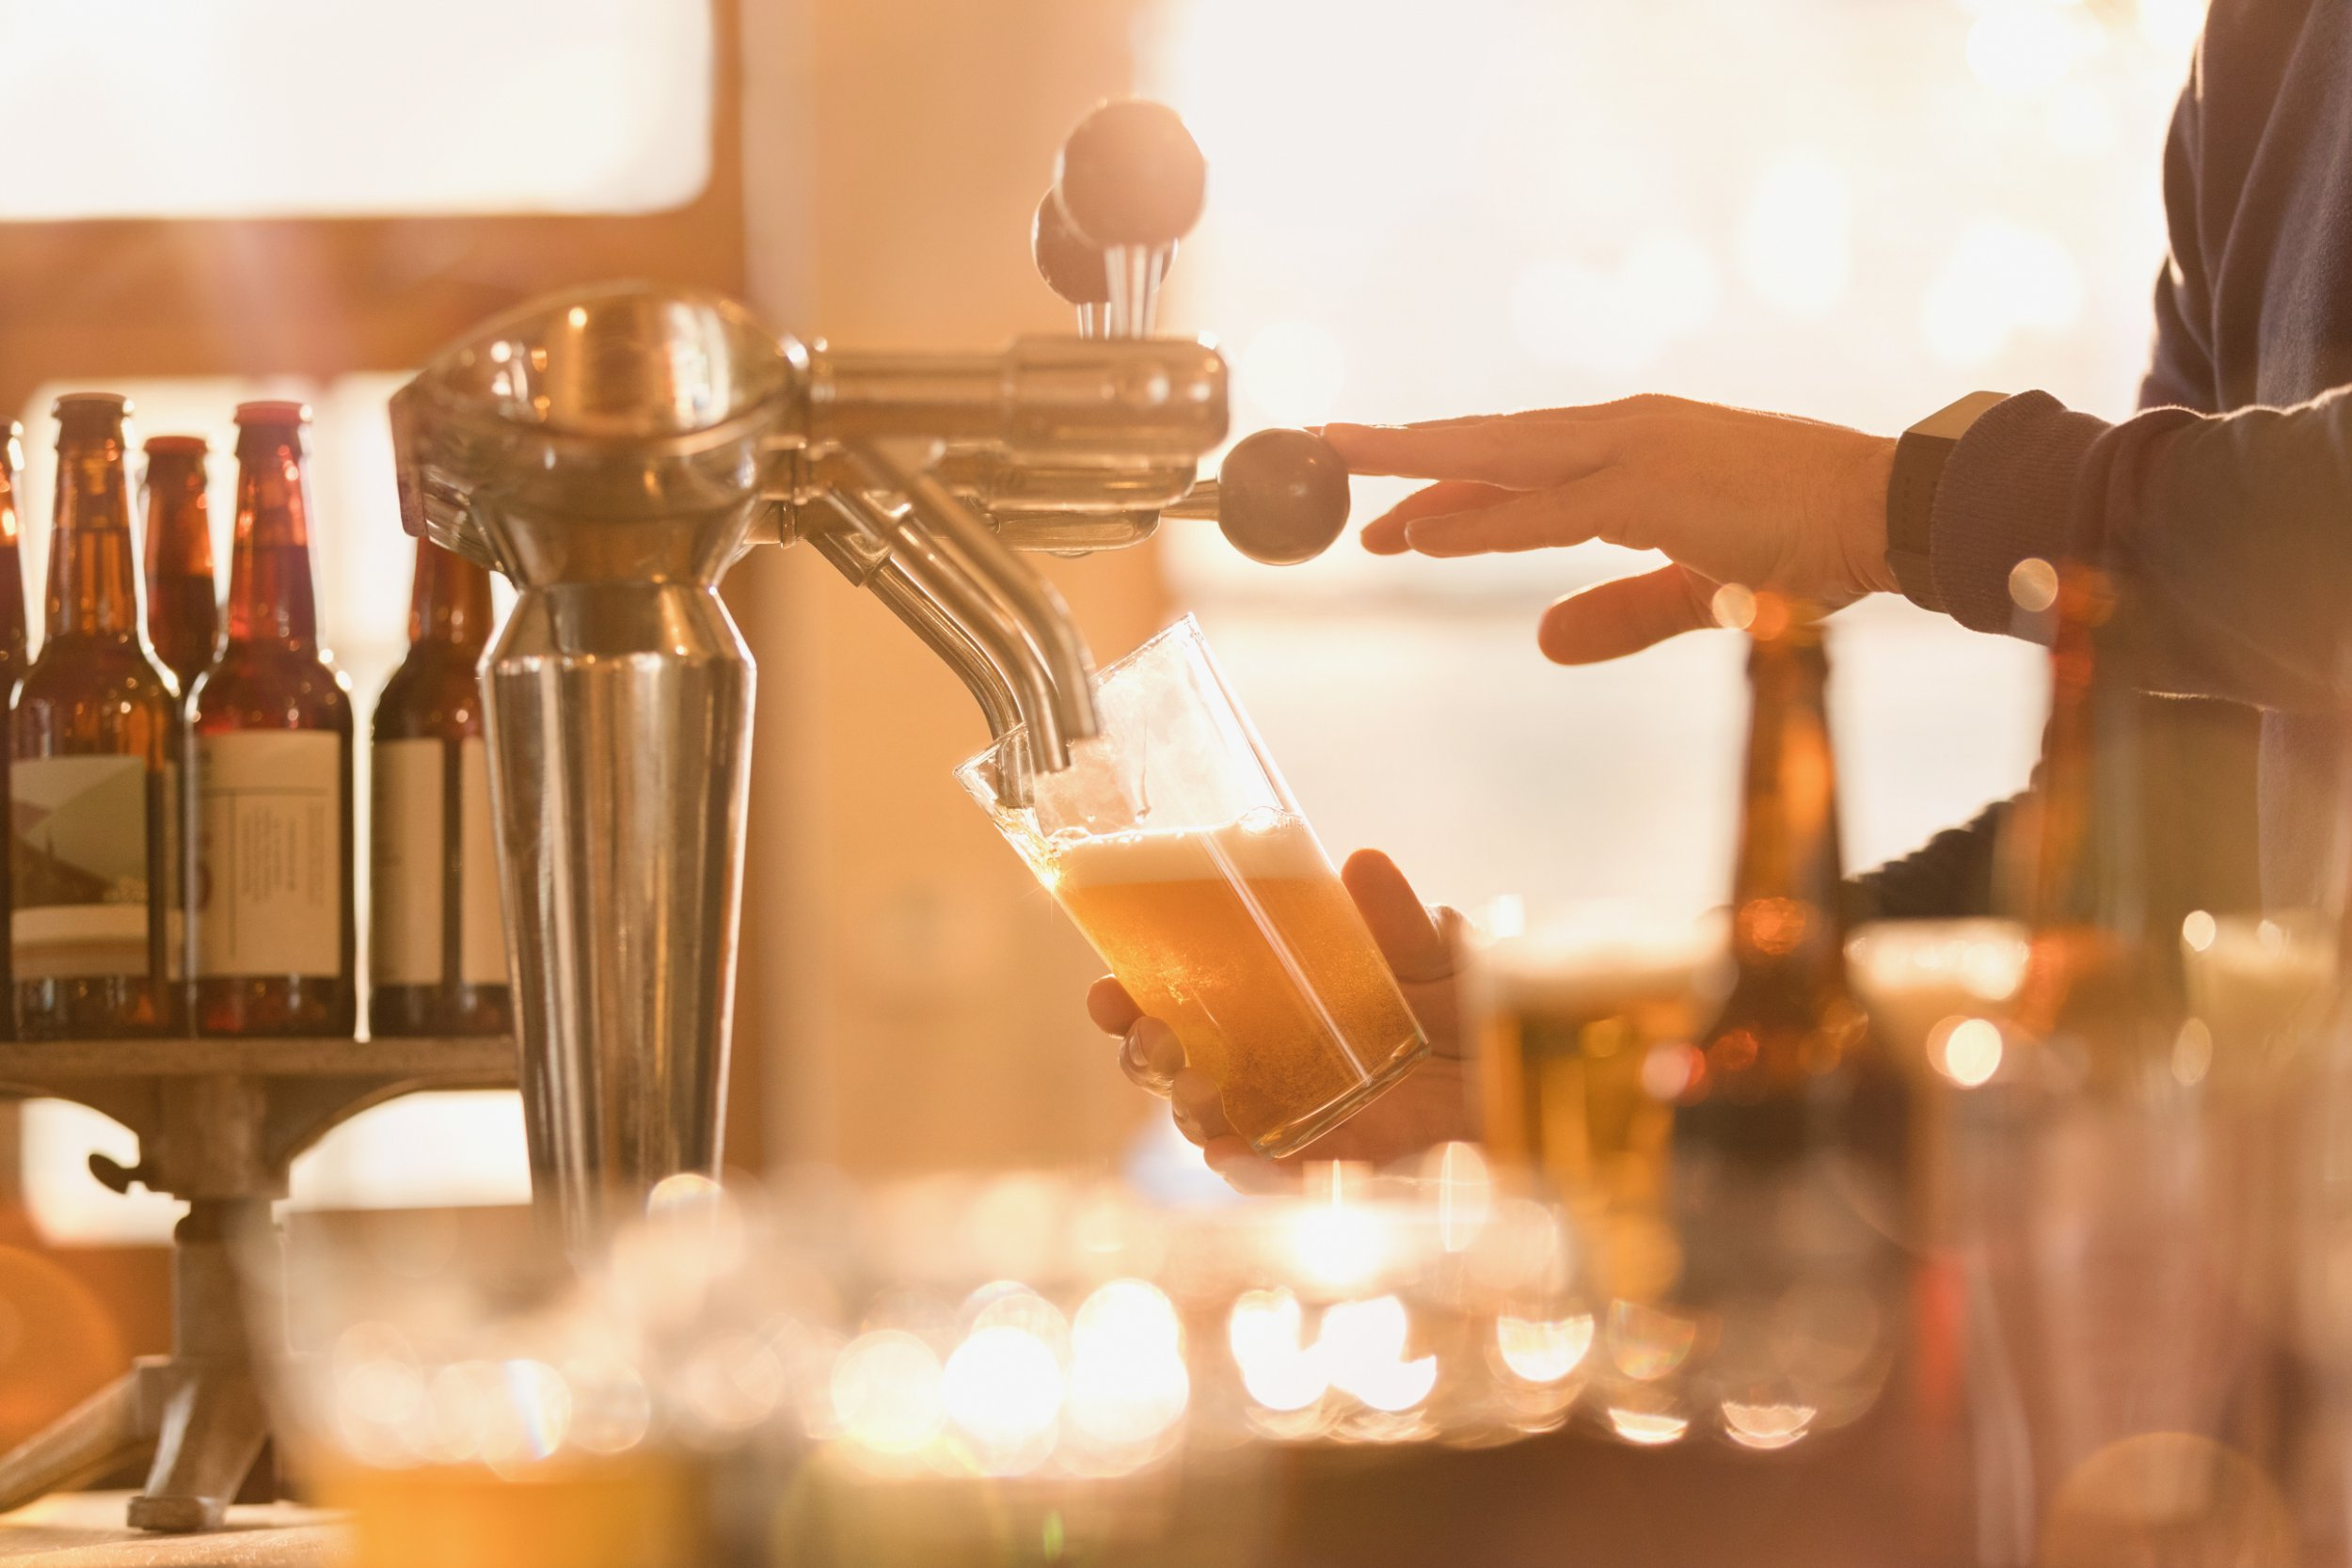 Huge petition to bring down the price of pints could save pubs